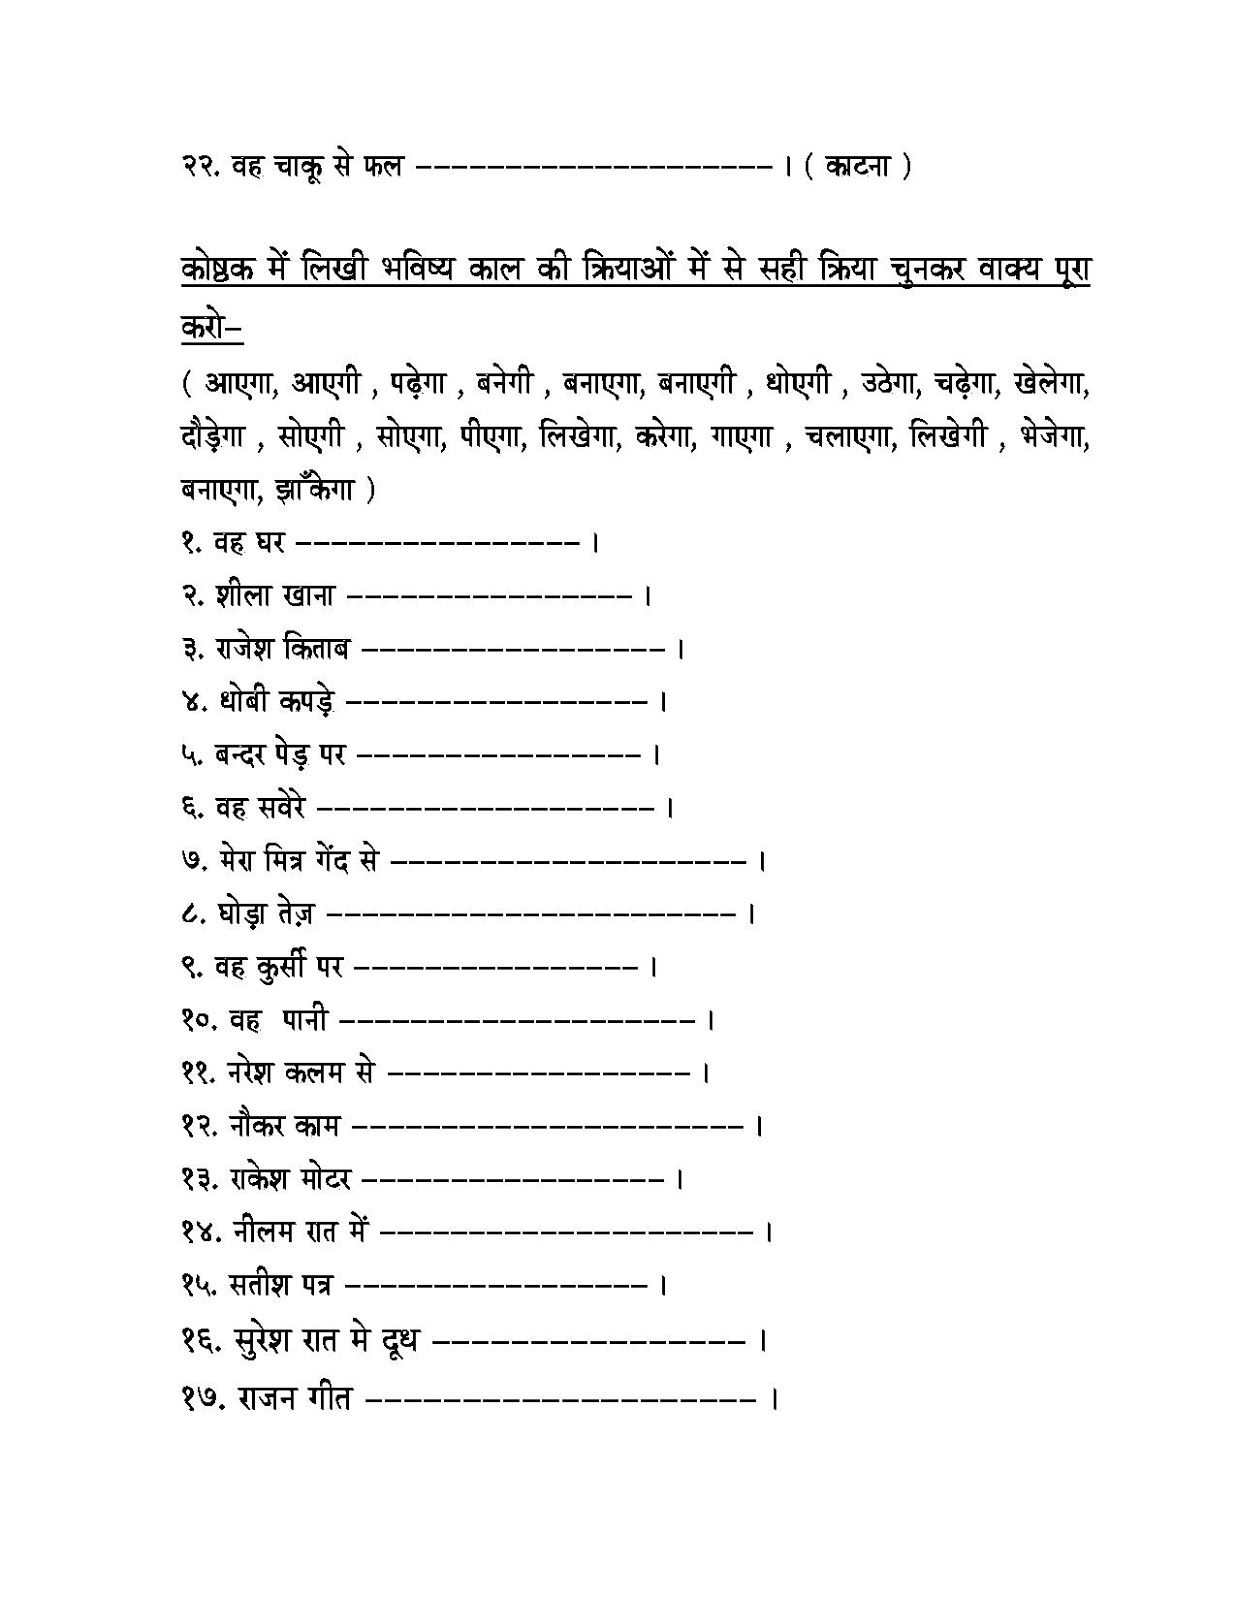 Printables Of Sangya Worksheets In Hindi For Grade 4